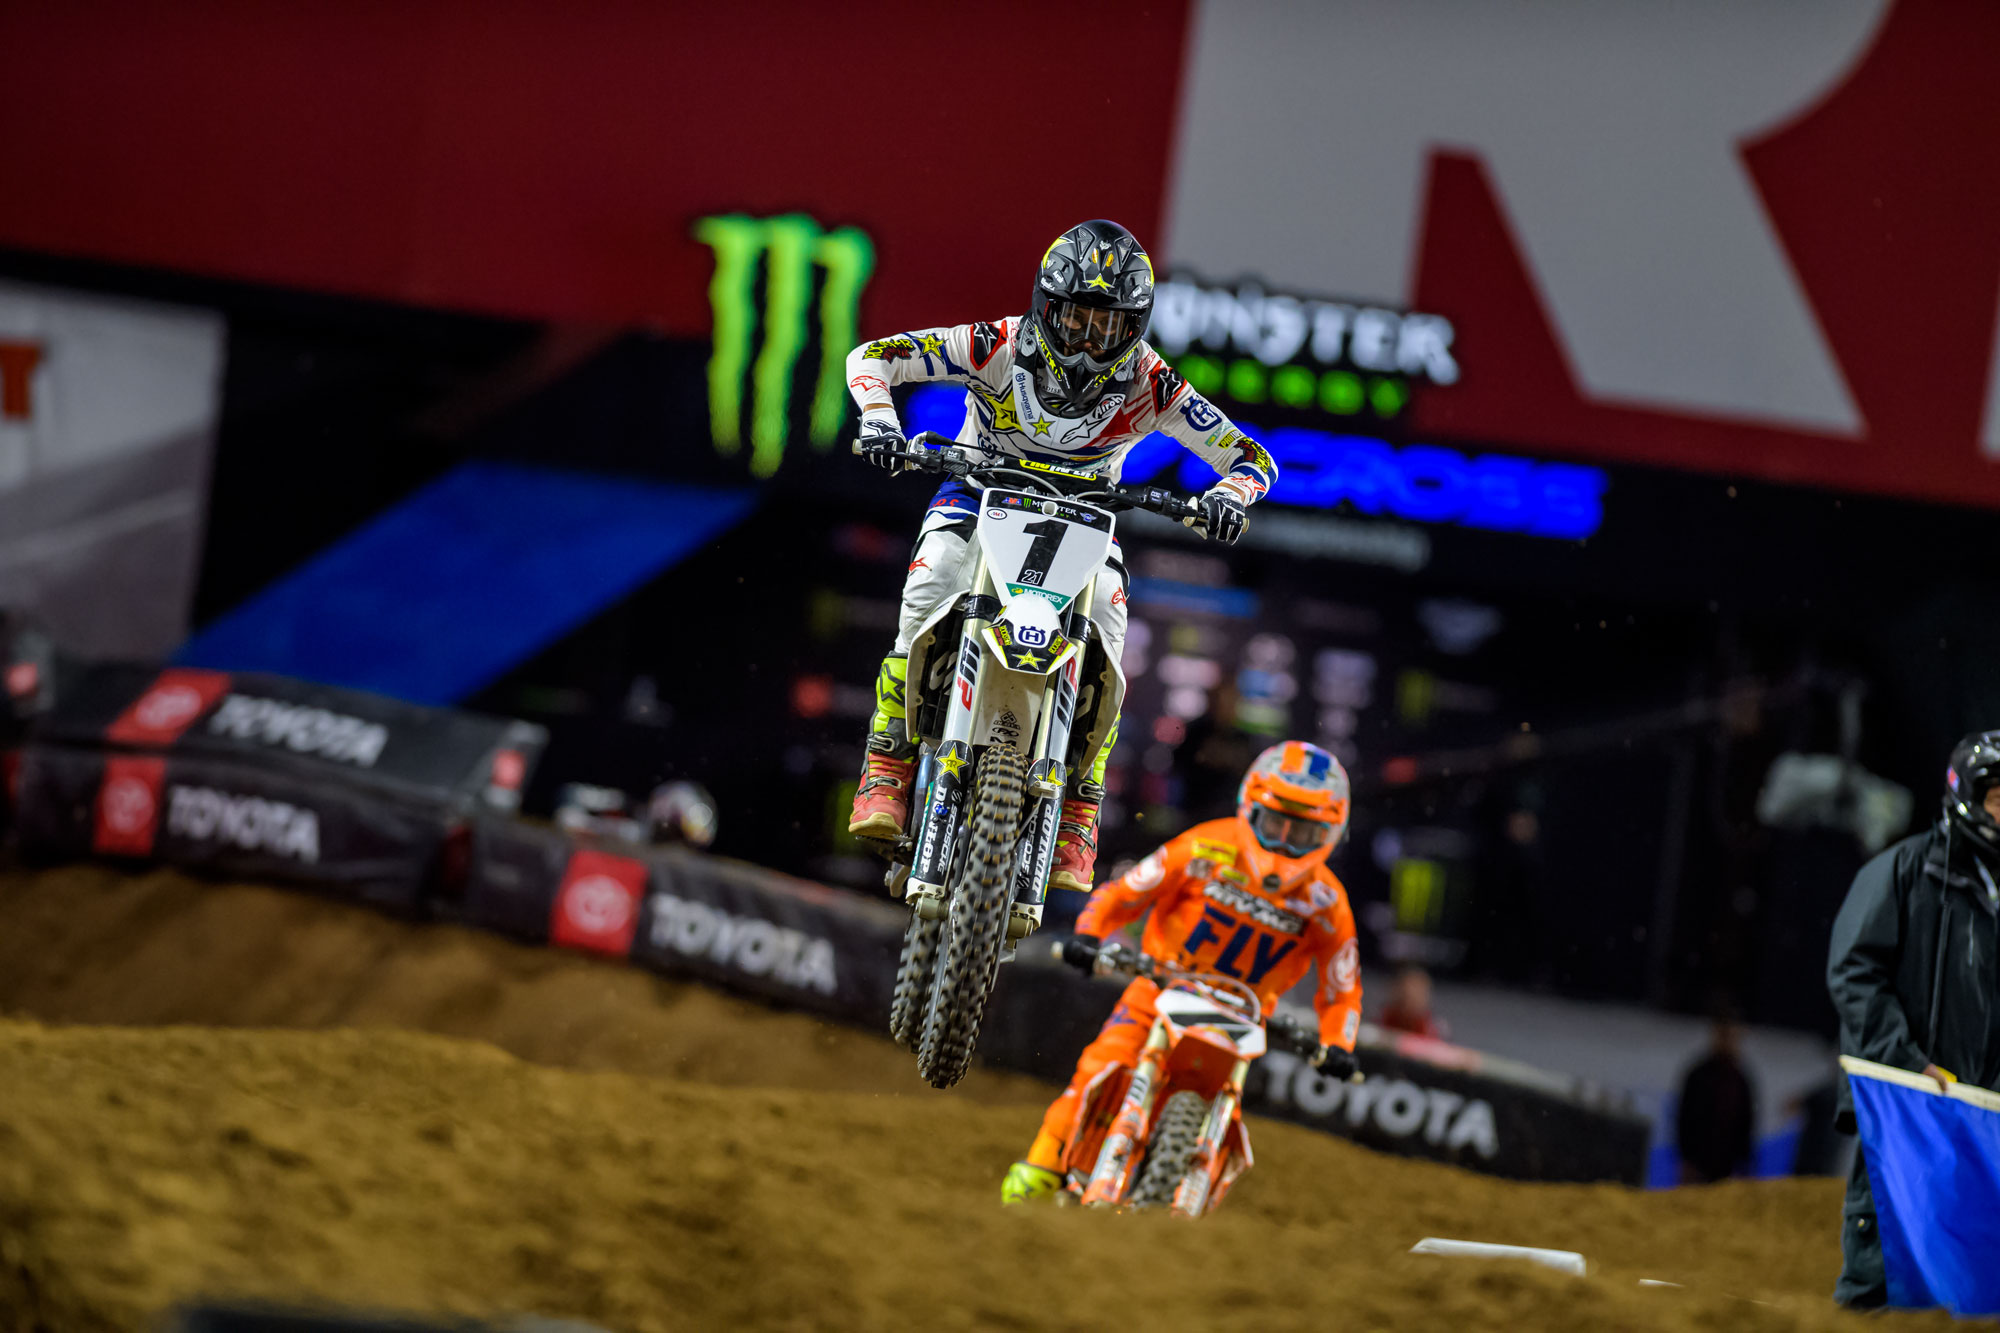 Rockstar Husqvarna's Jason Anderson battled up front and finished 2nd in the deserst